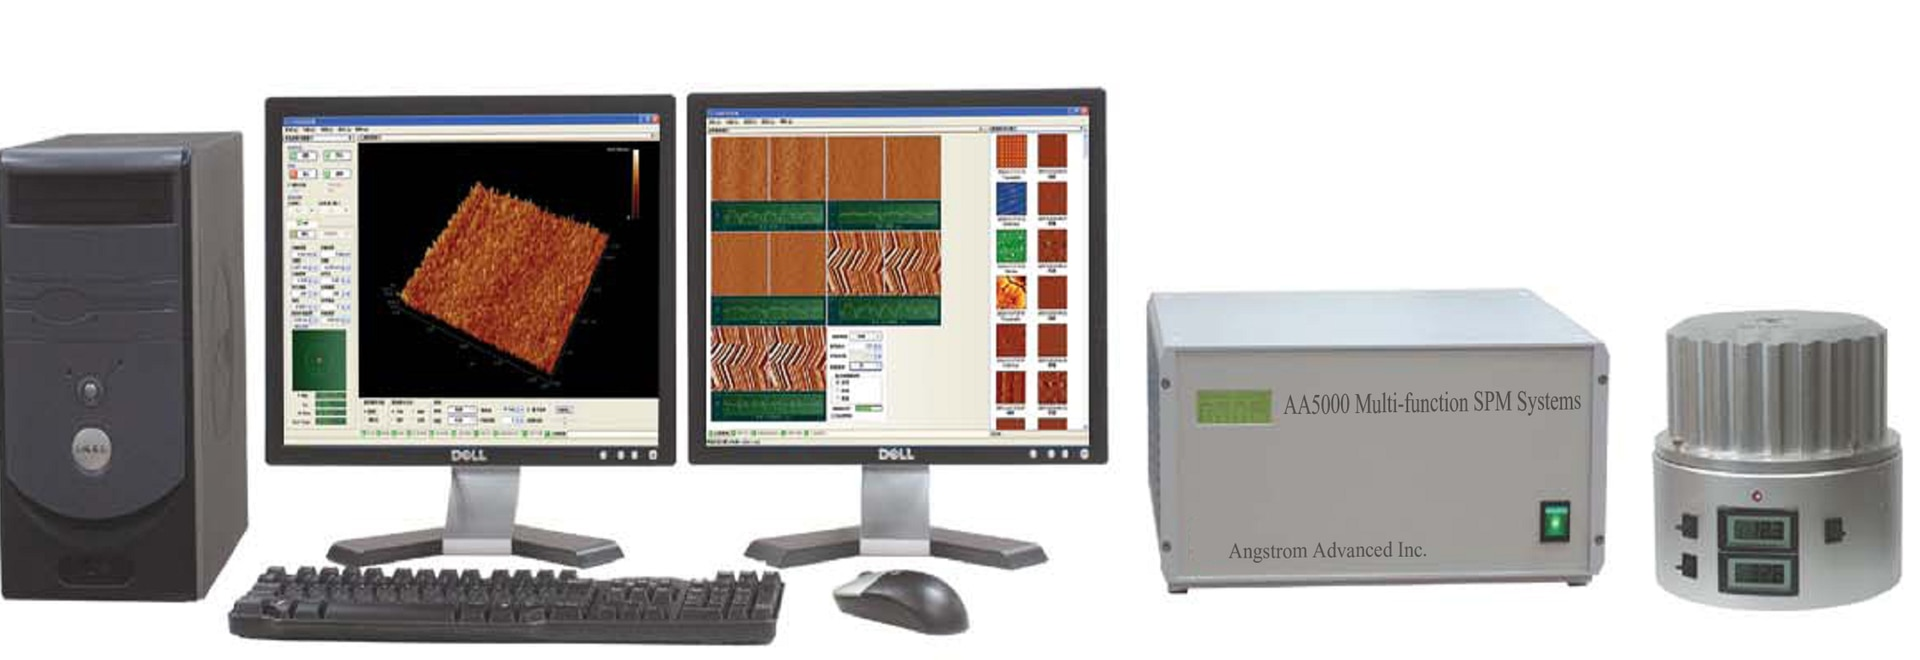 Angstrom has released a new model of Multi-function Scanning Probe Microscope